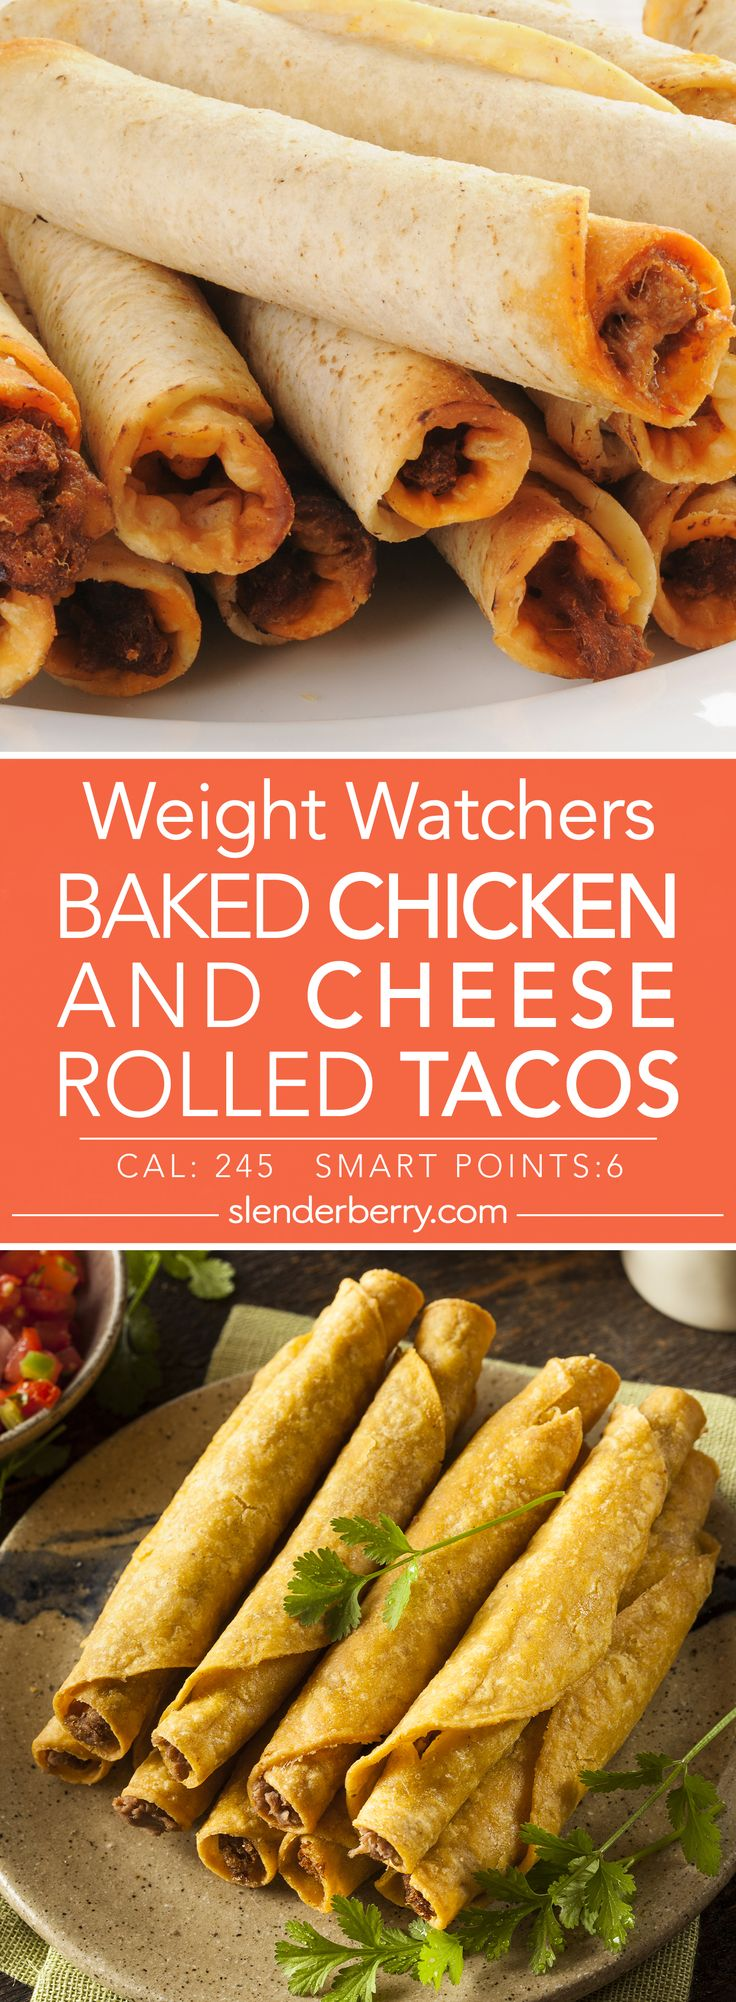 Weight Watchers Baked Chicken and Cheese Rolled Tacos Recipe - 6 Smart Points 245 Calories